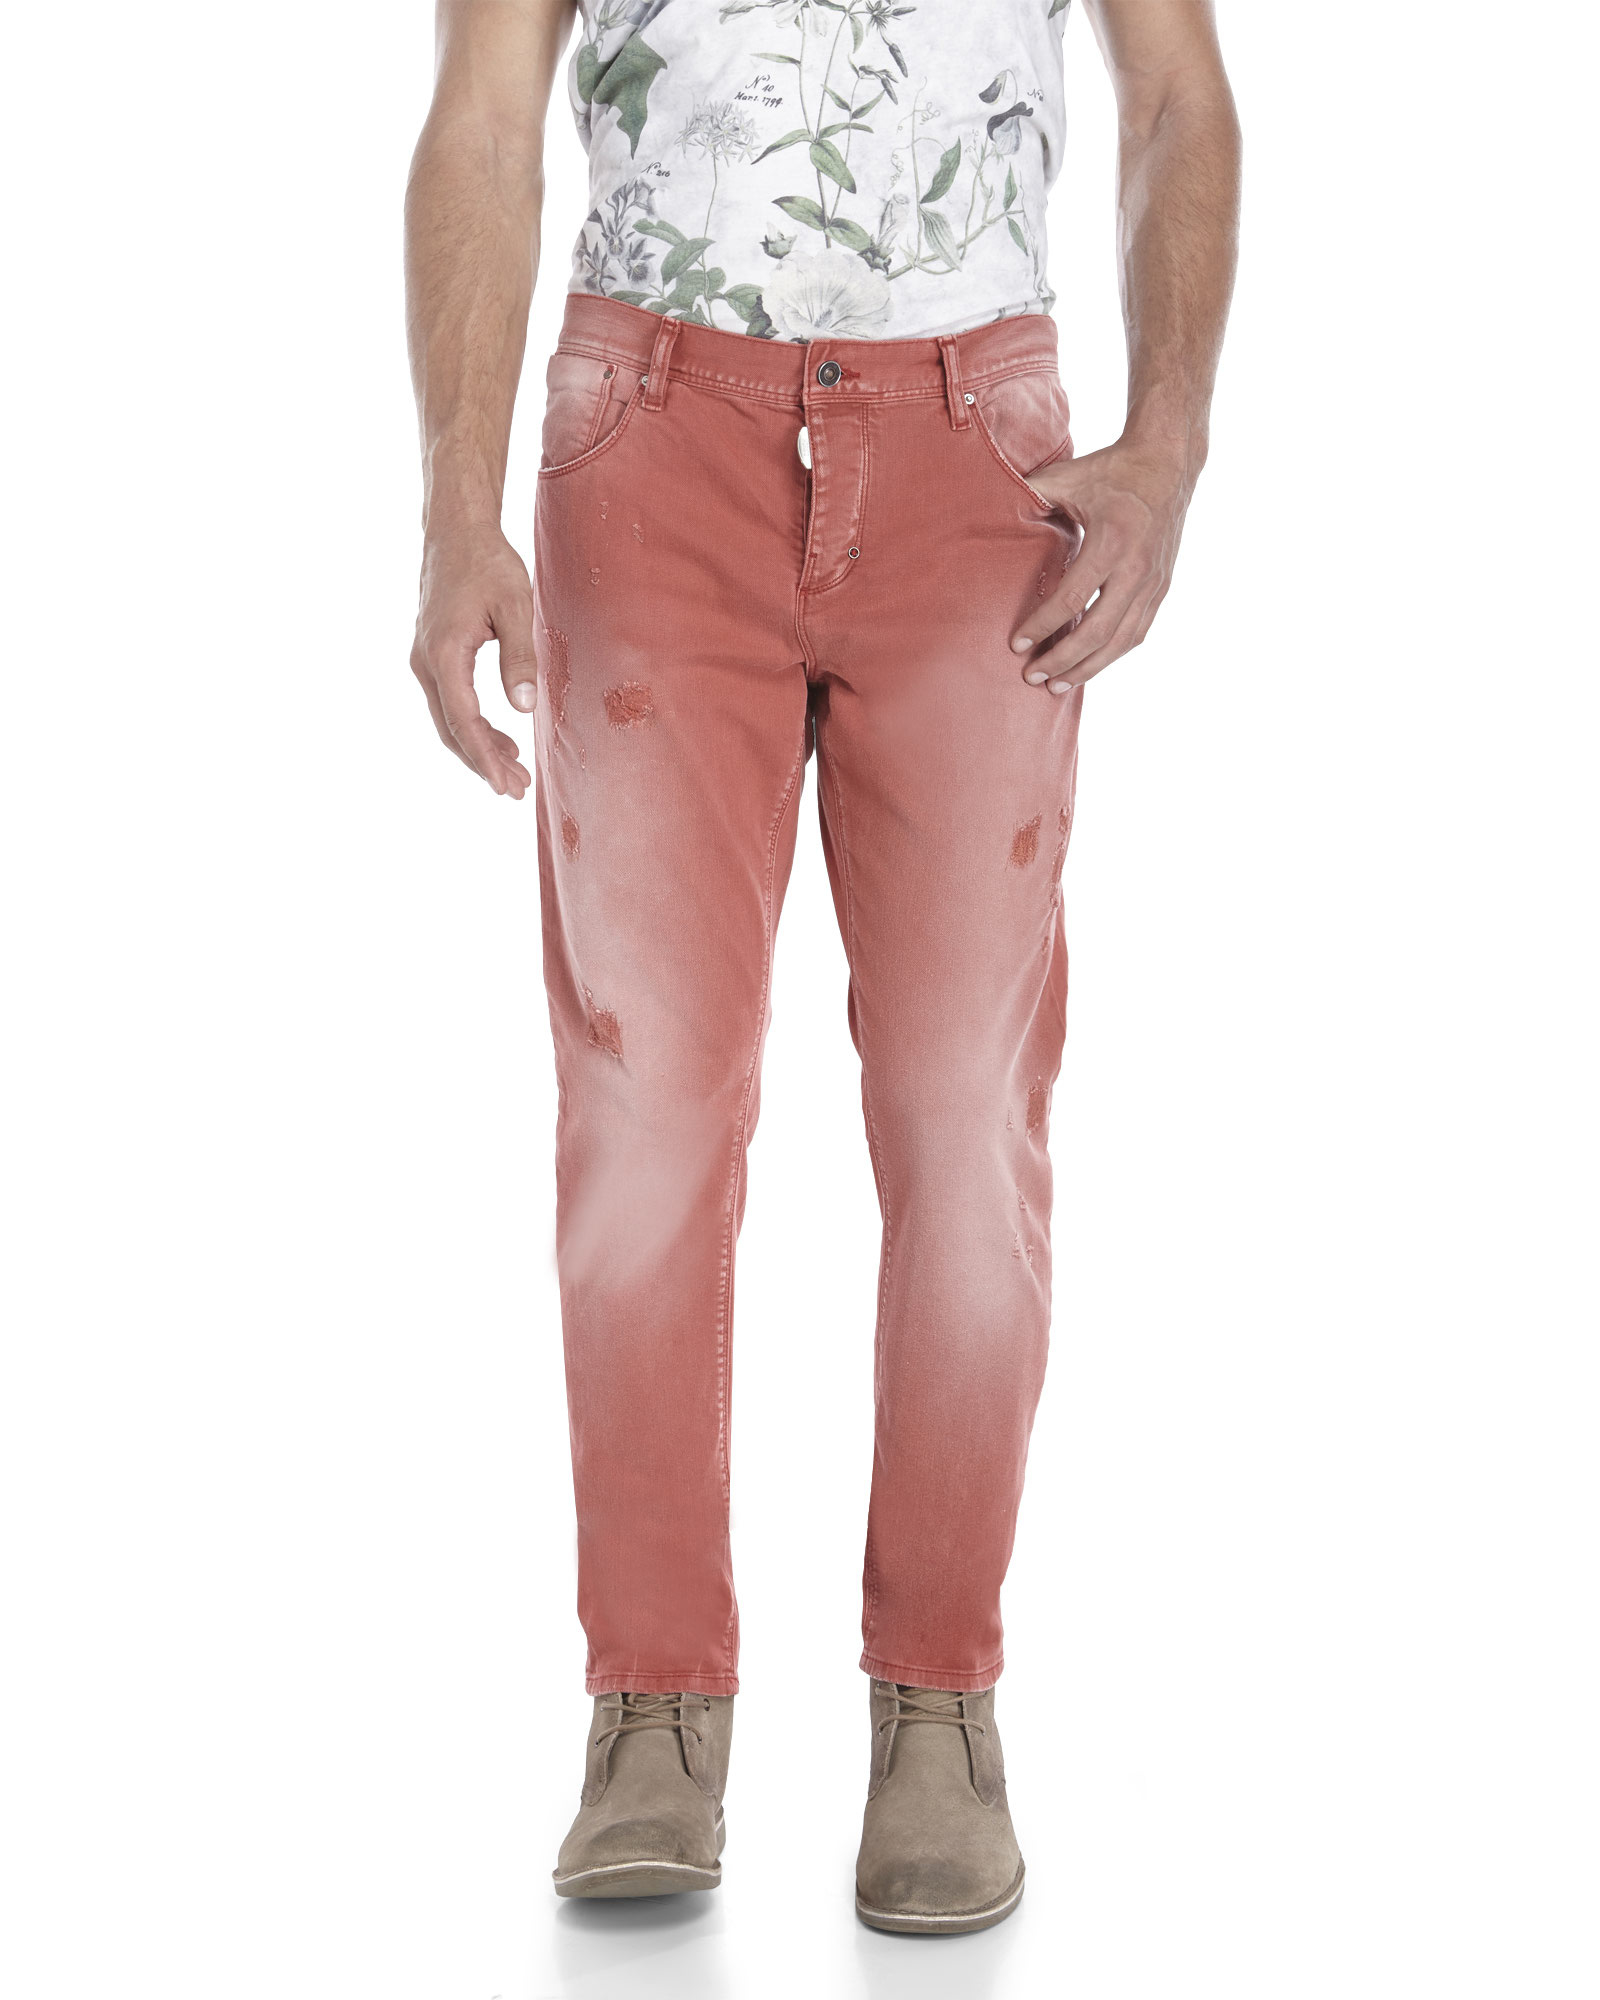 Lyst - Antony Morato Brick Red Duran Carrot Fit Jeans in Red for Men 536880bba7b